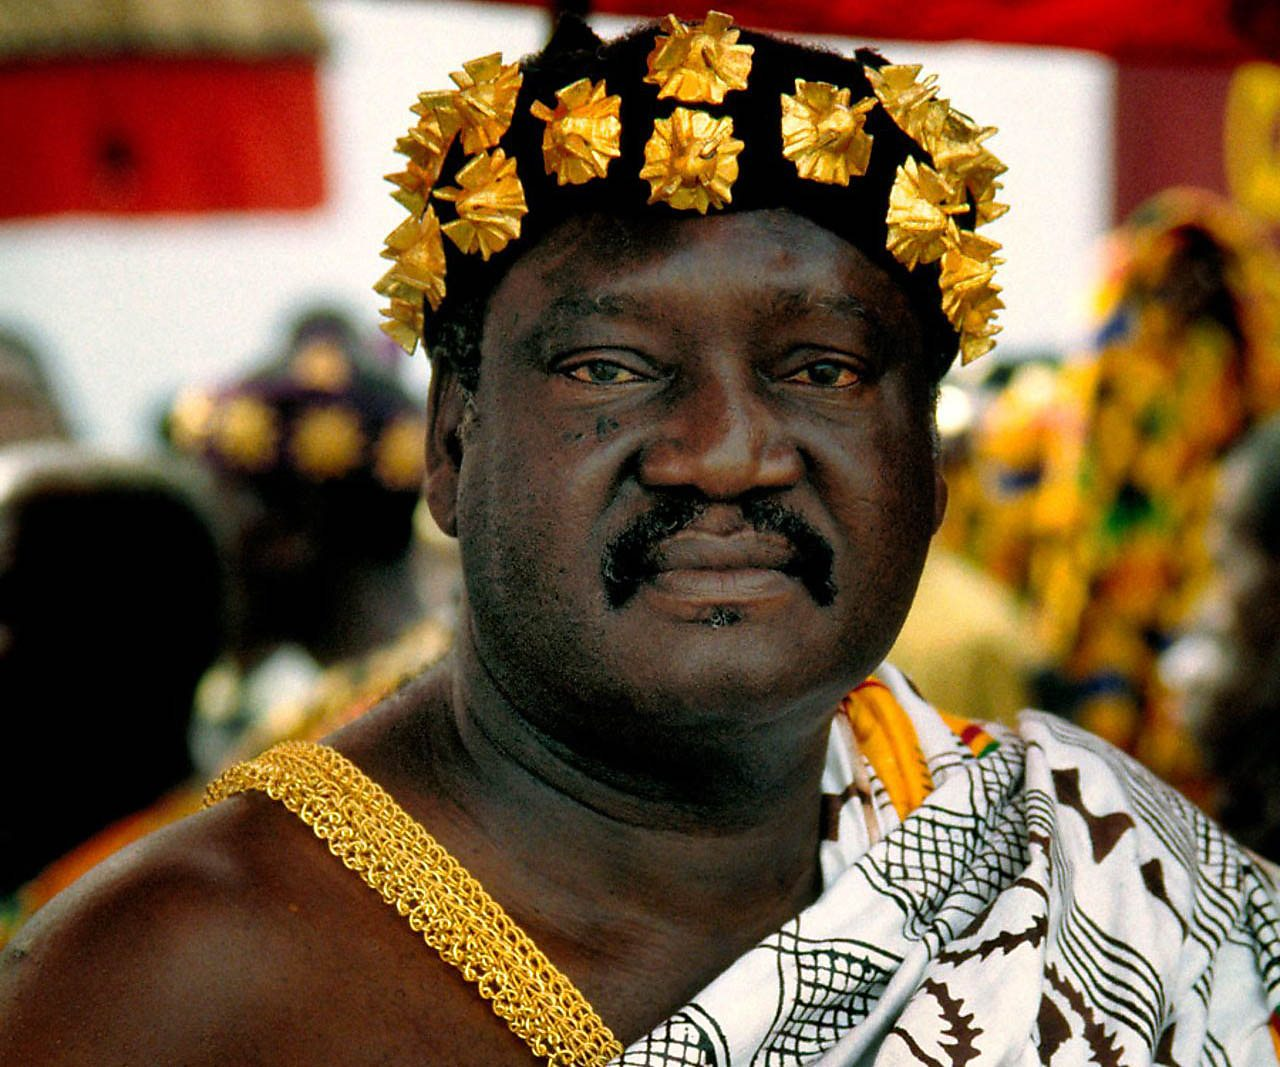 An Asante chief dressed in robes and crown.